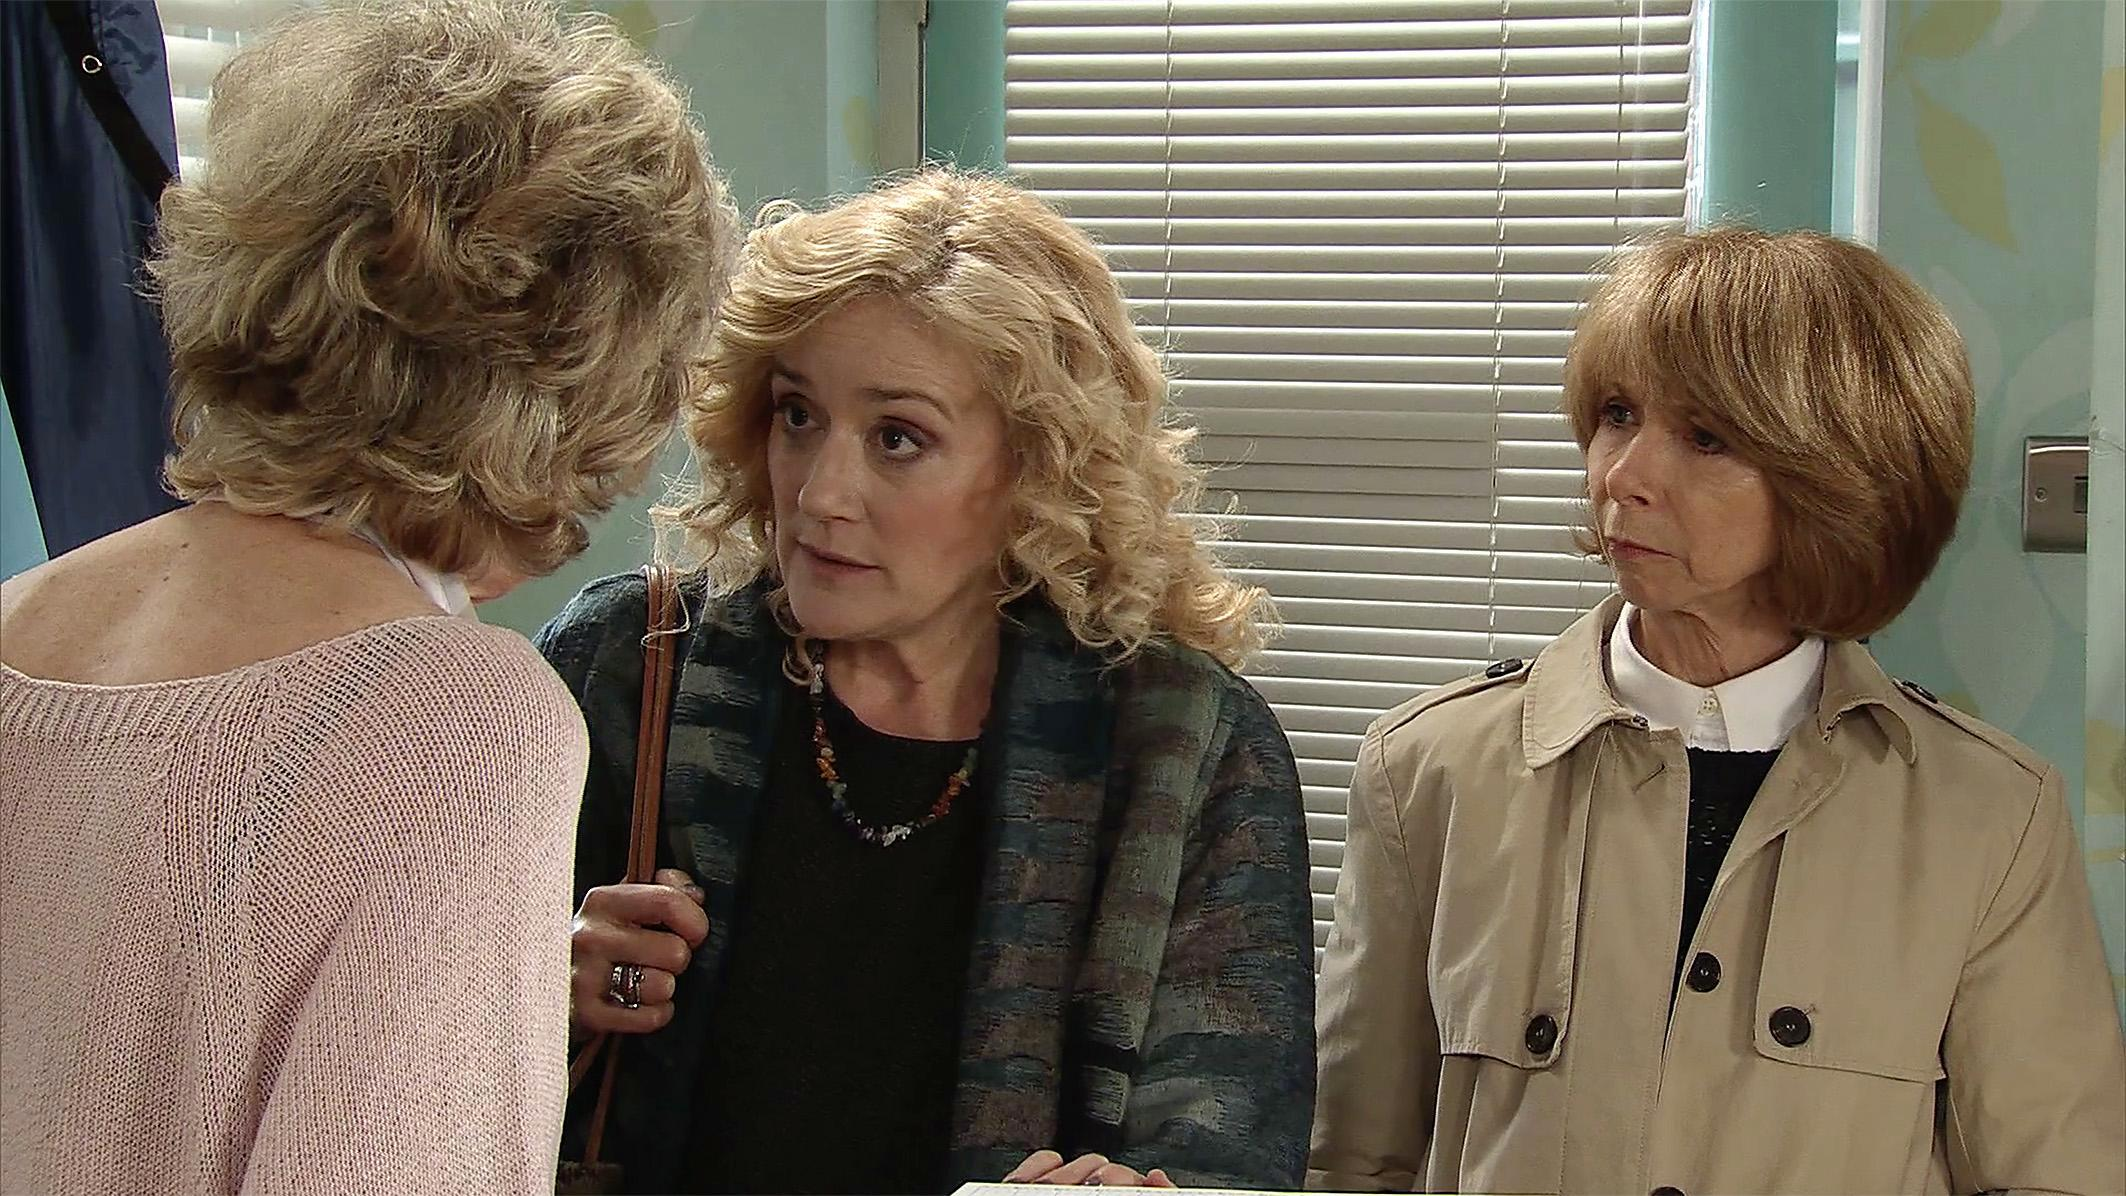 Coronation Street's Sophie Thompson reveals she feared she was 's*** and unprofessional' on her first day over the excitement of being in the soap